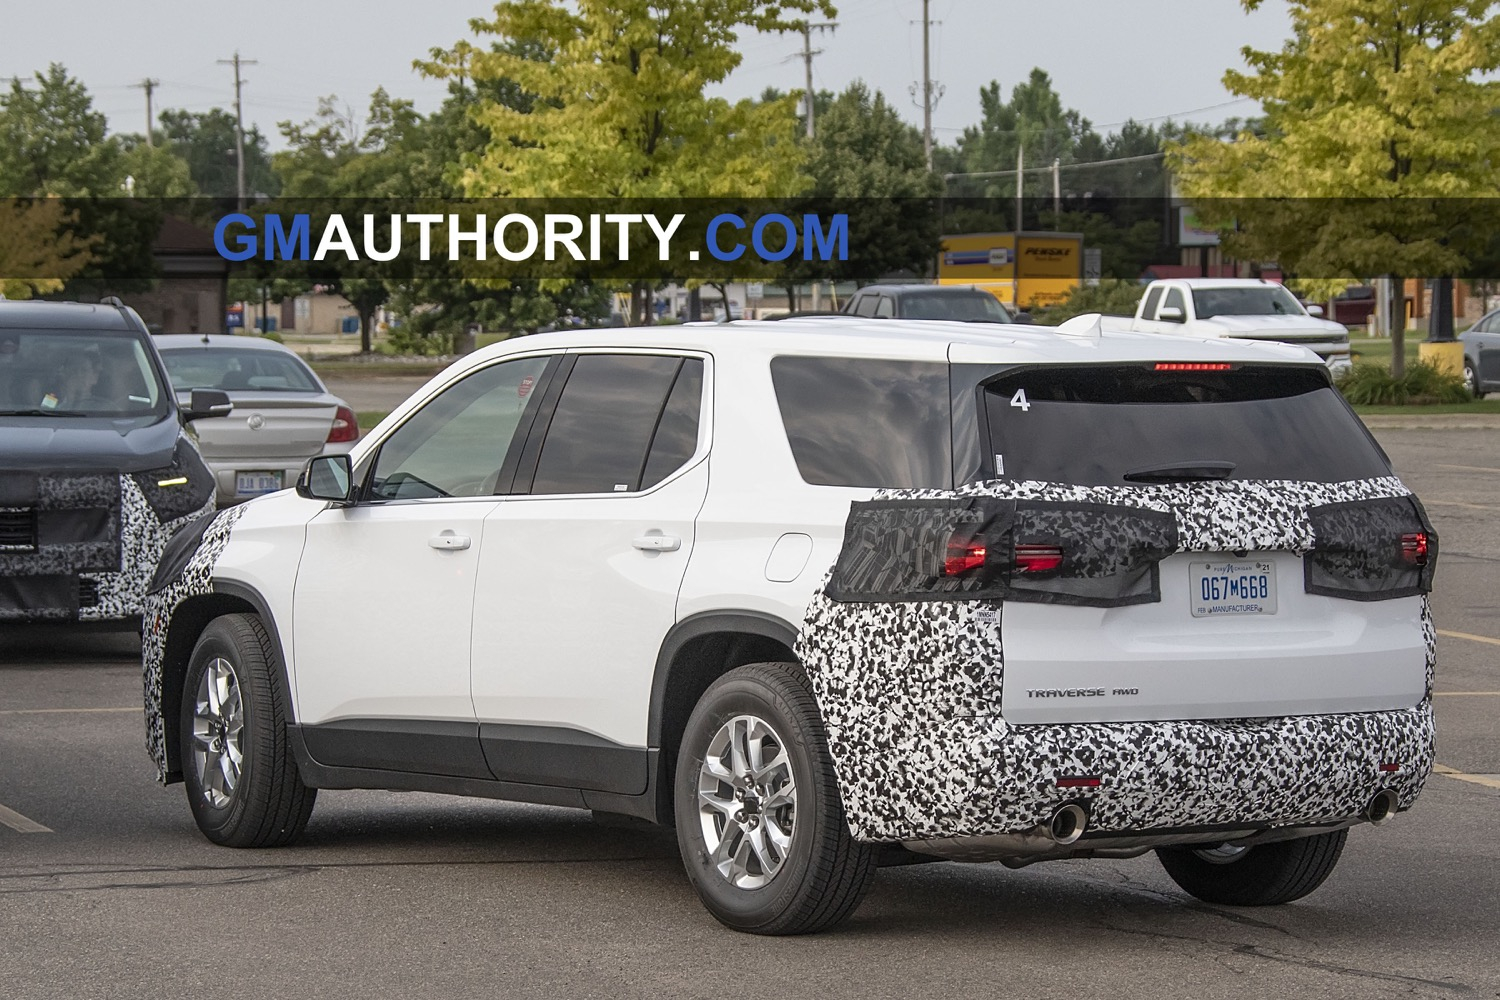 2021 Chevrolet Traverse Info, Specs, Wiki   Gm Authority 2021 Chevy Traverse Ls Specs, Review, Features